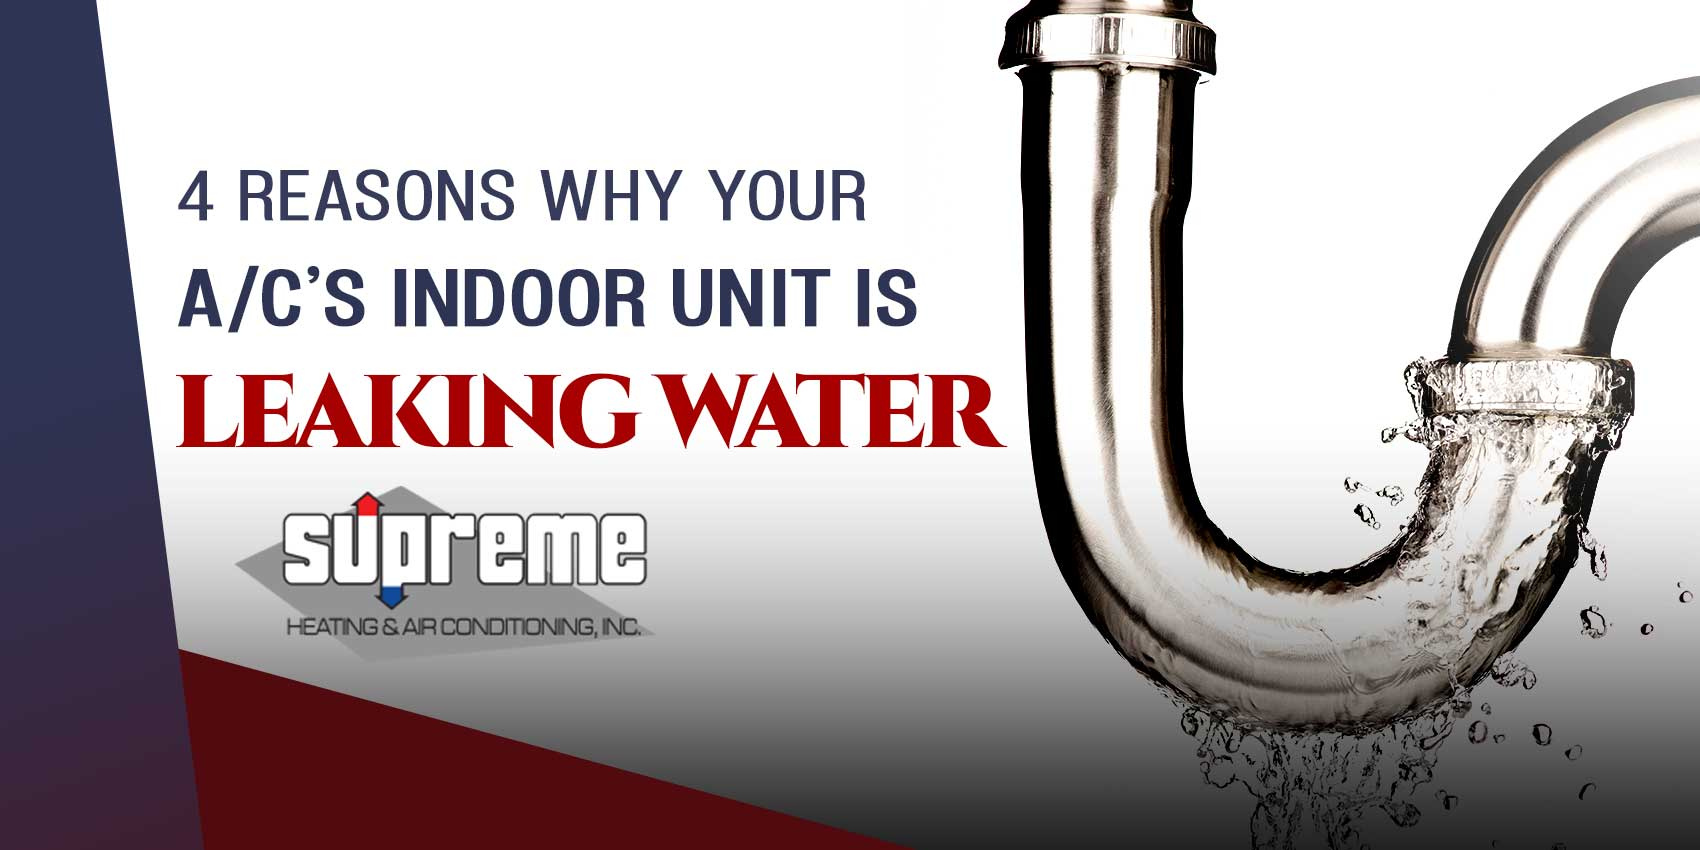 4 Reasons Why Your A/C's Indoor Unit is Leaking Water